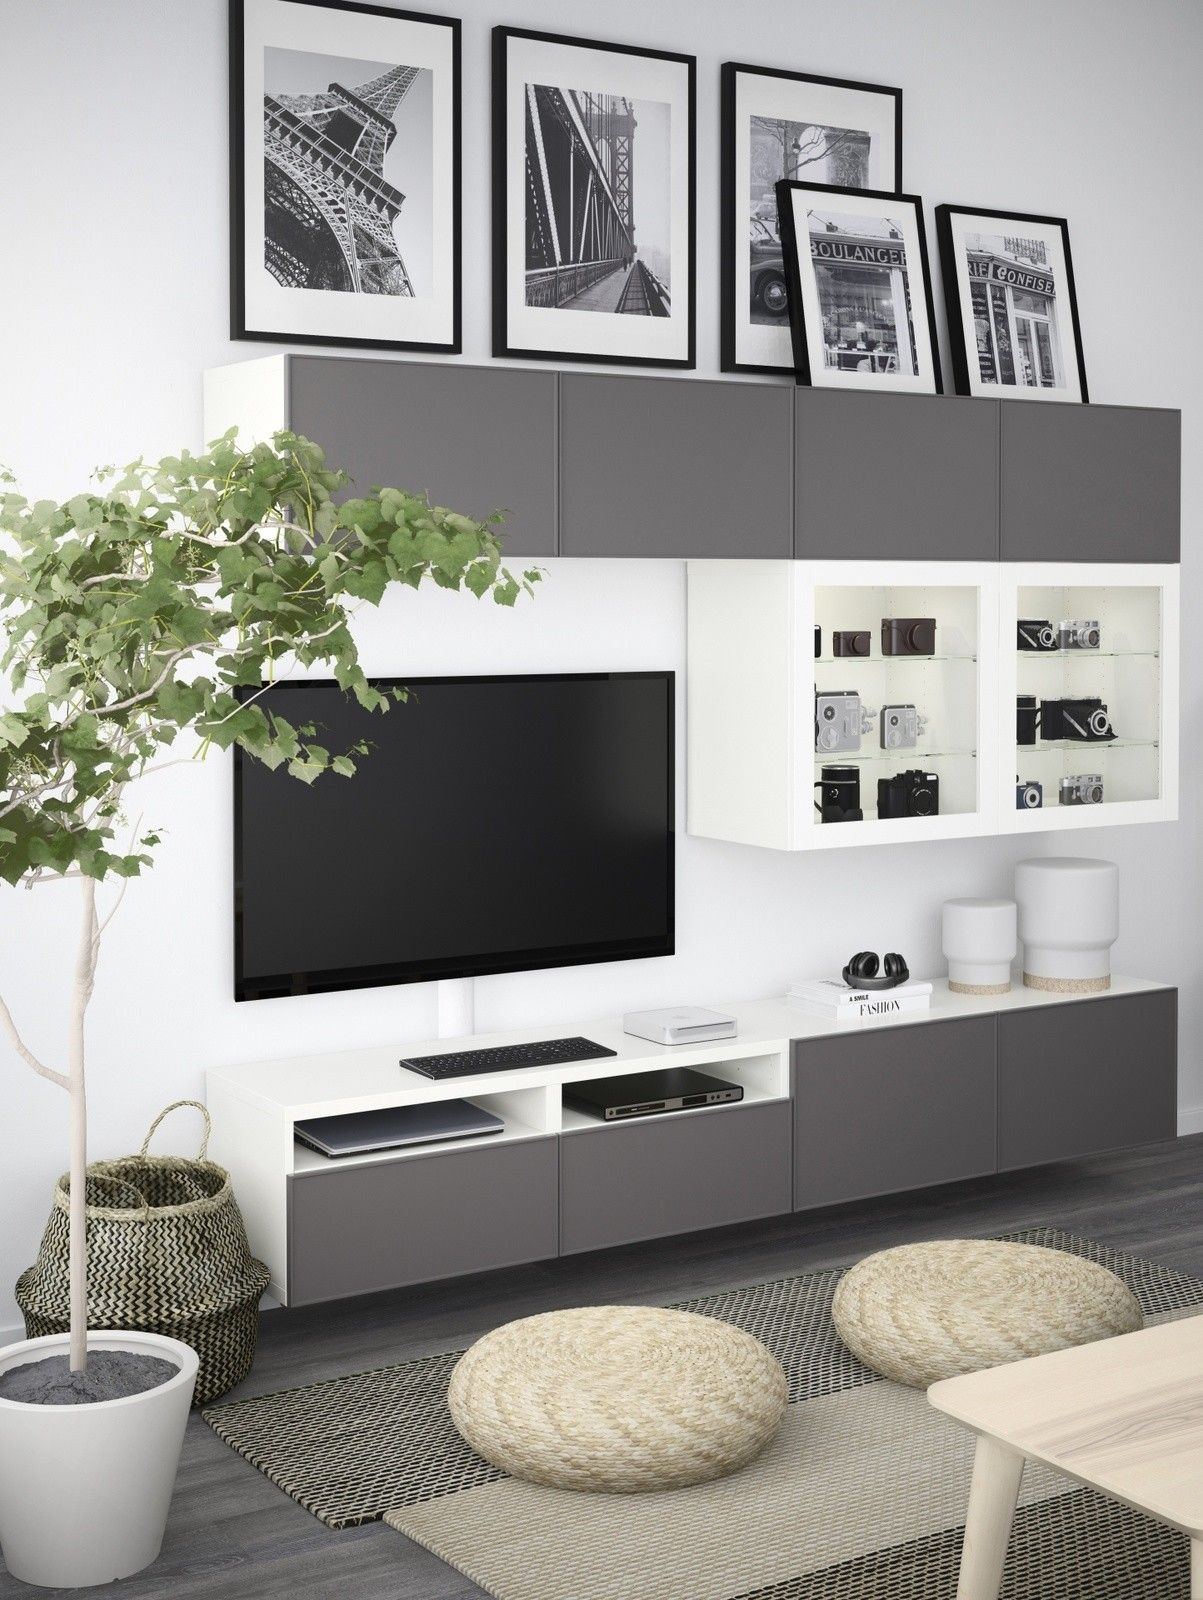 Mur besta mieszkanko pinterest living rooms room - Ikea tv wand ...